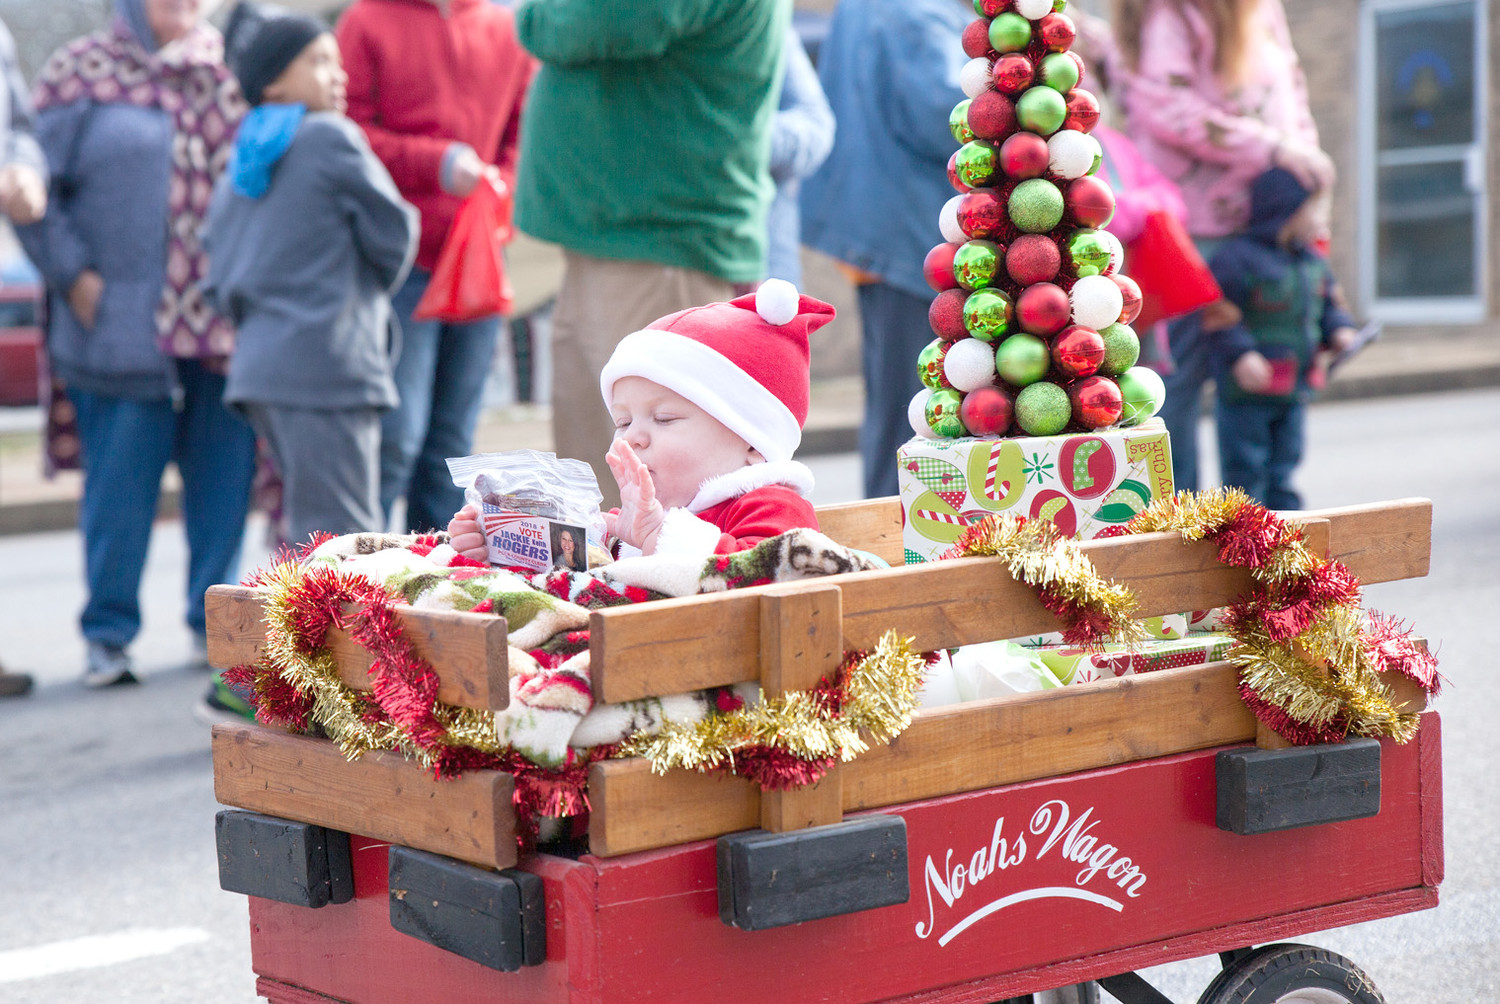 THIS LITTLE HELPER, dressed as Santa Claus, was possibly the youngest single float occupant in the Polk County Parade on Saturday.